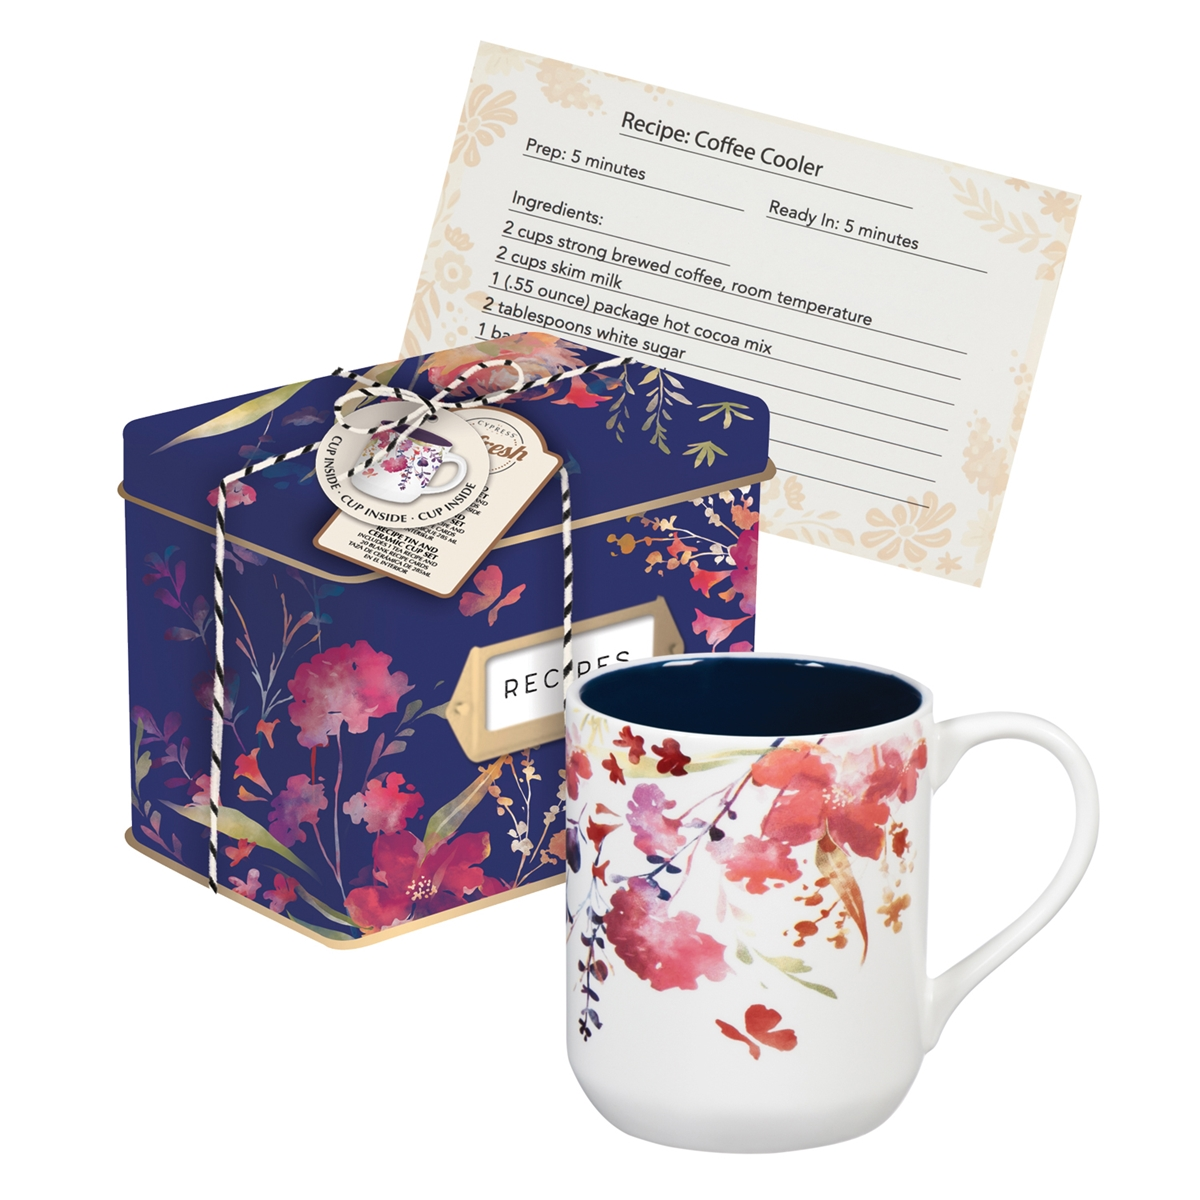 Recipe Tin and Mug